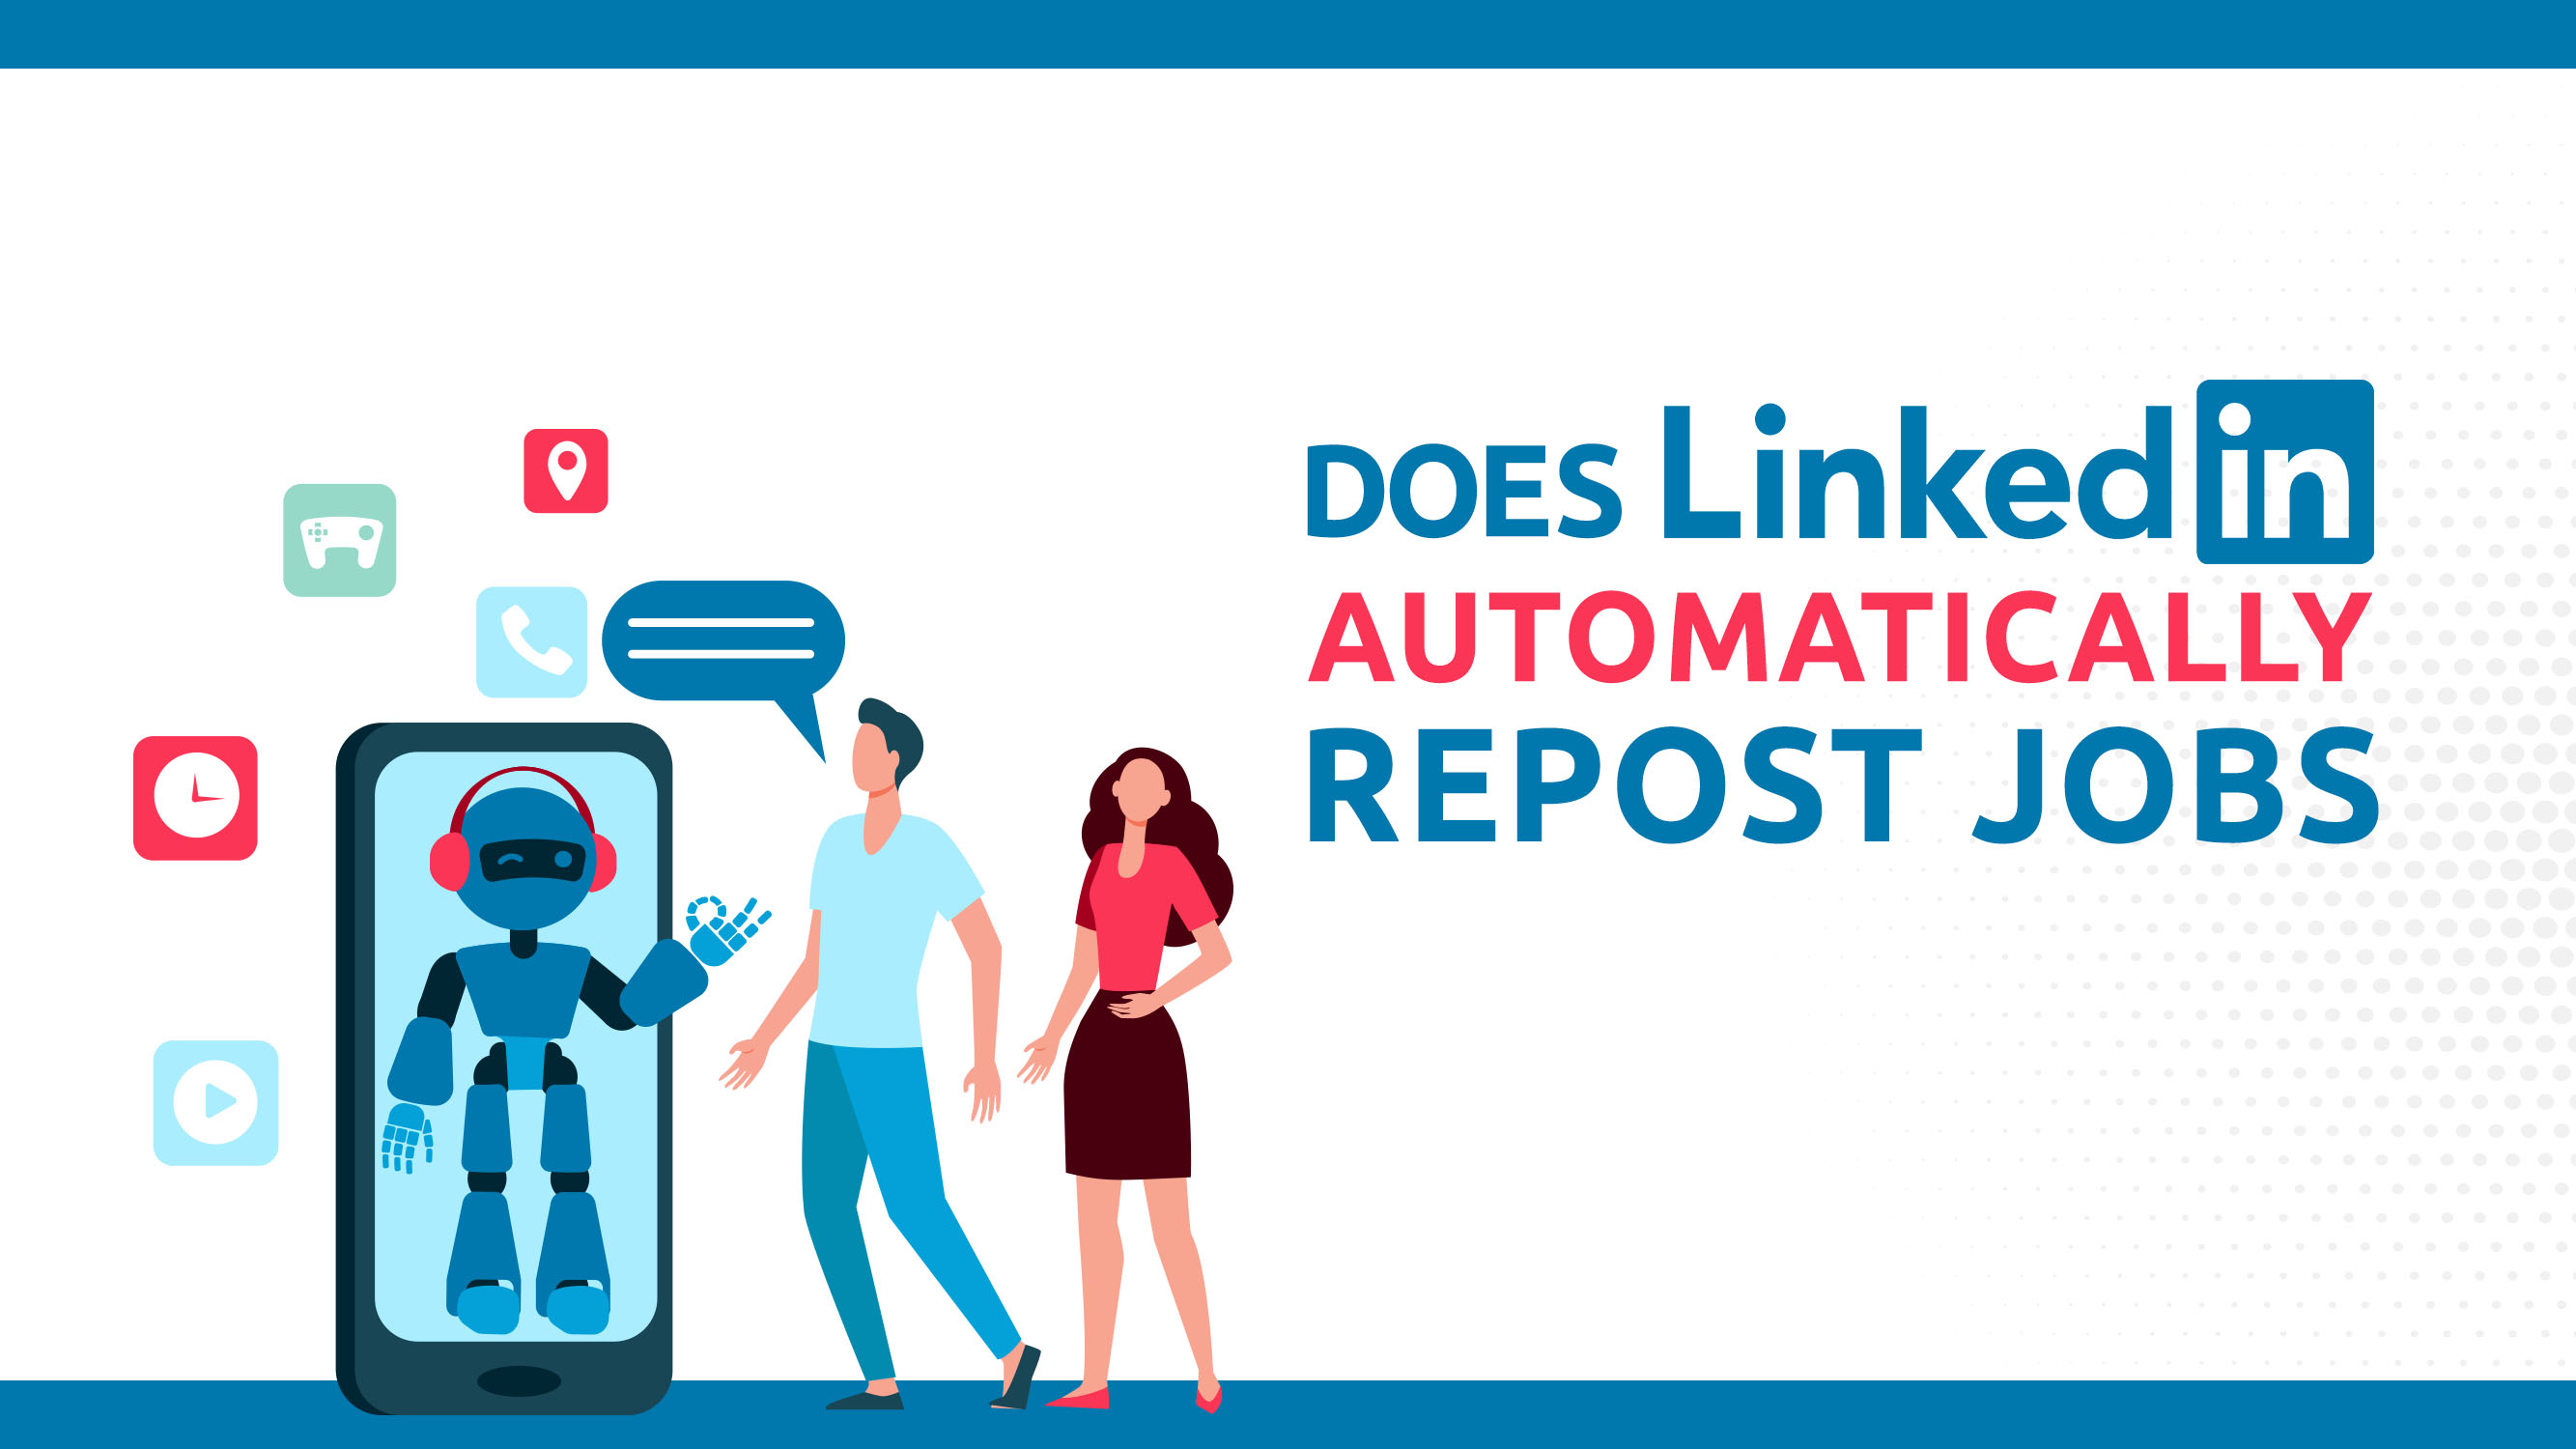 Does LinkedIn Automatically Repost Jobs?